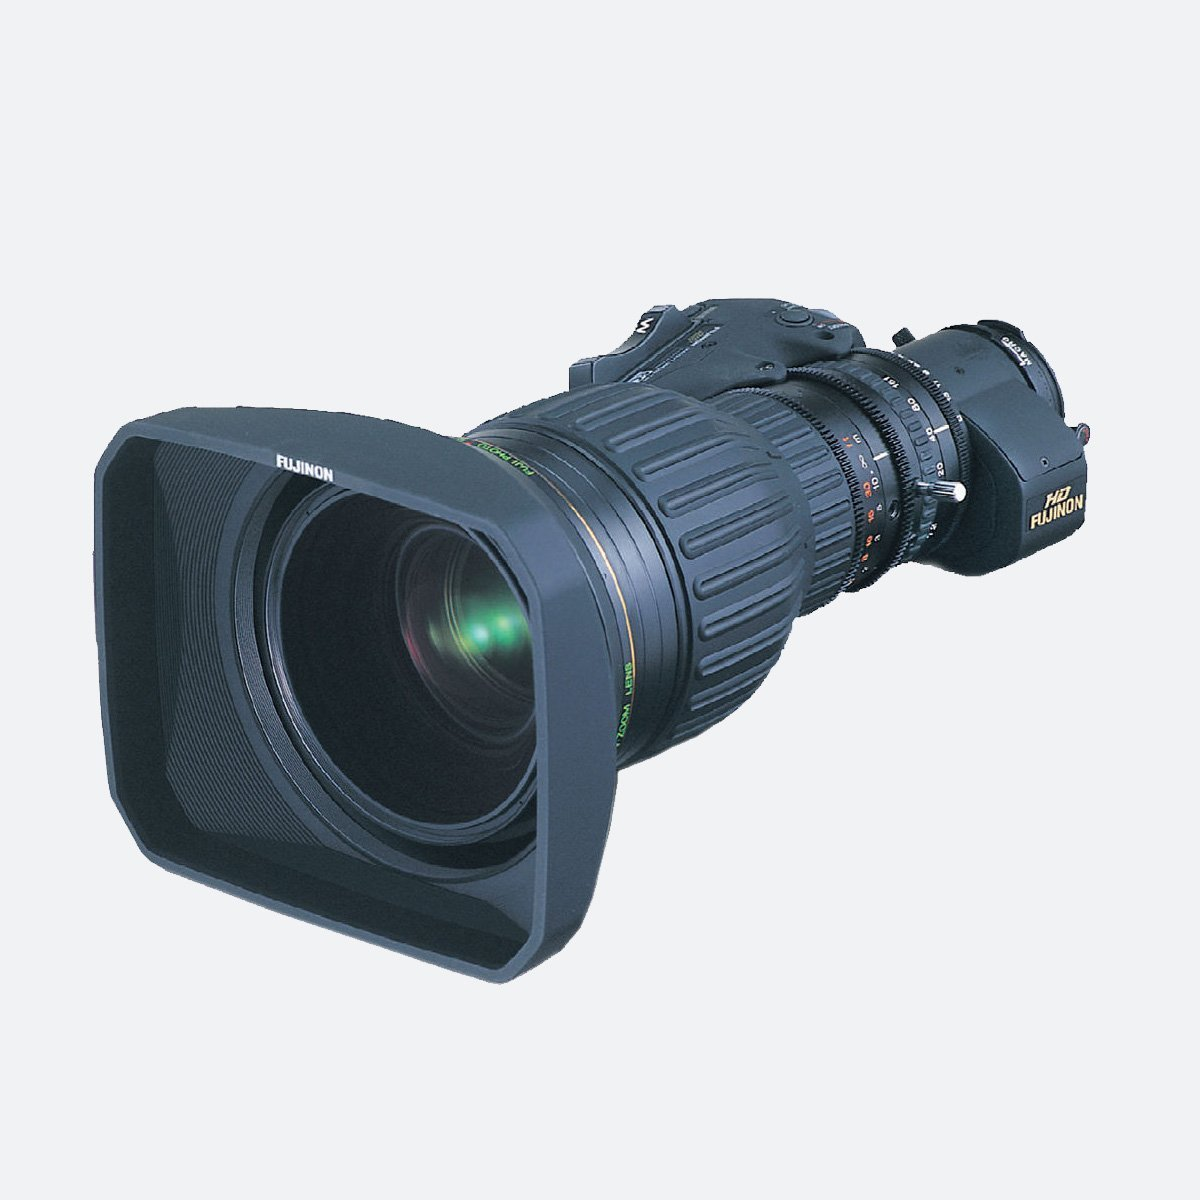 Fujinon HA22x7.3 BERD High Performance HD Lens